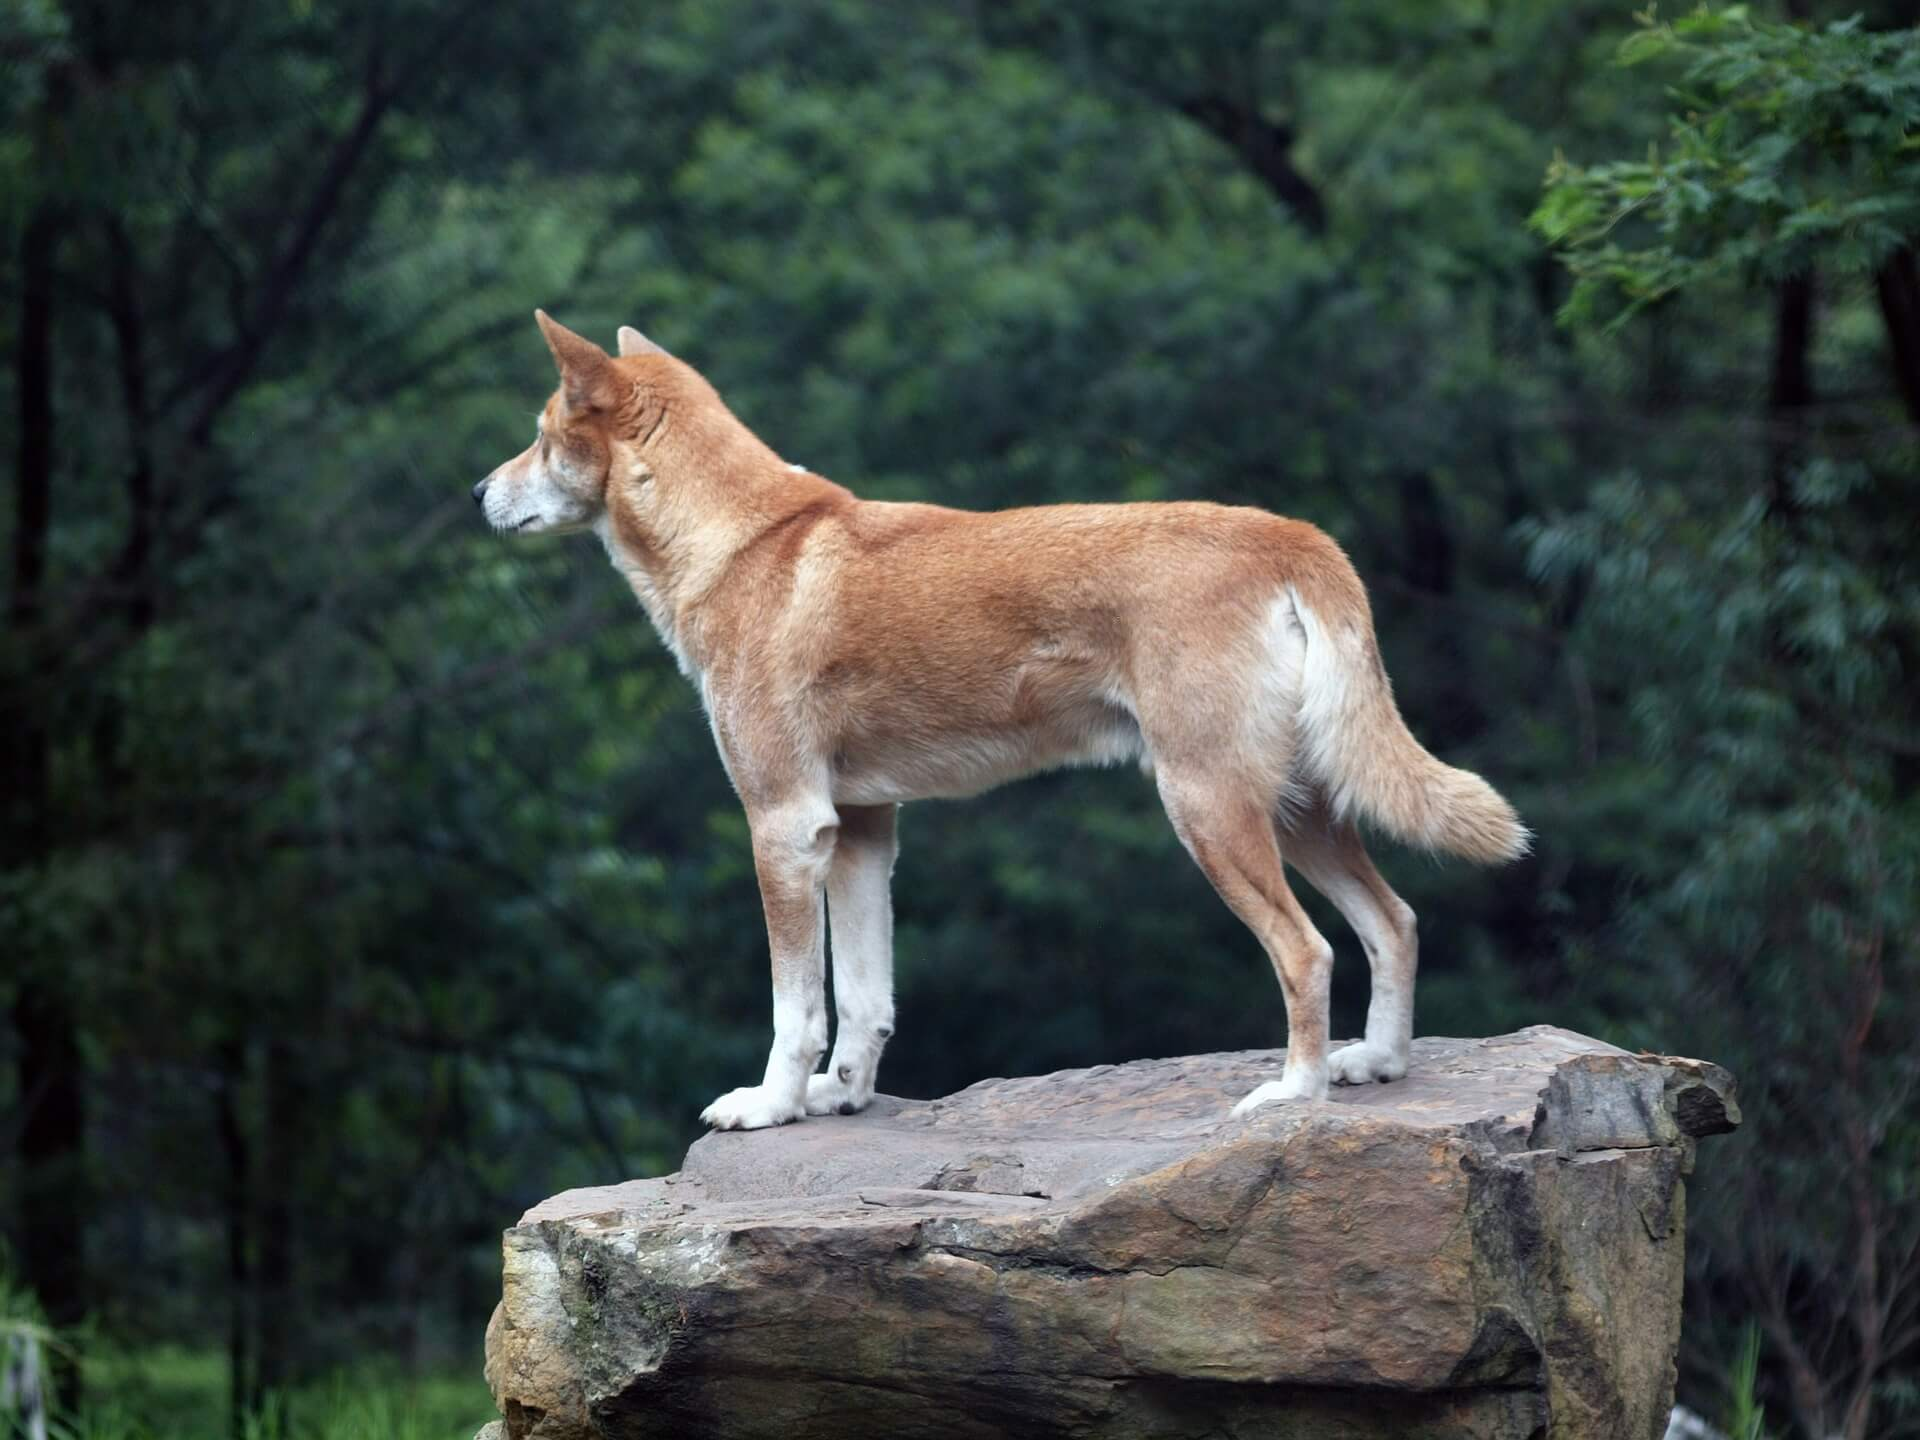 Dingo (wild dog) standing on a rock - side on view